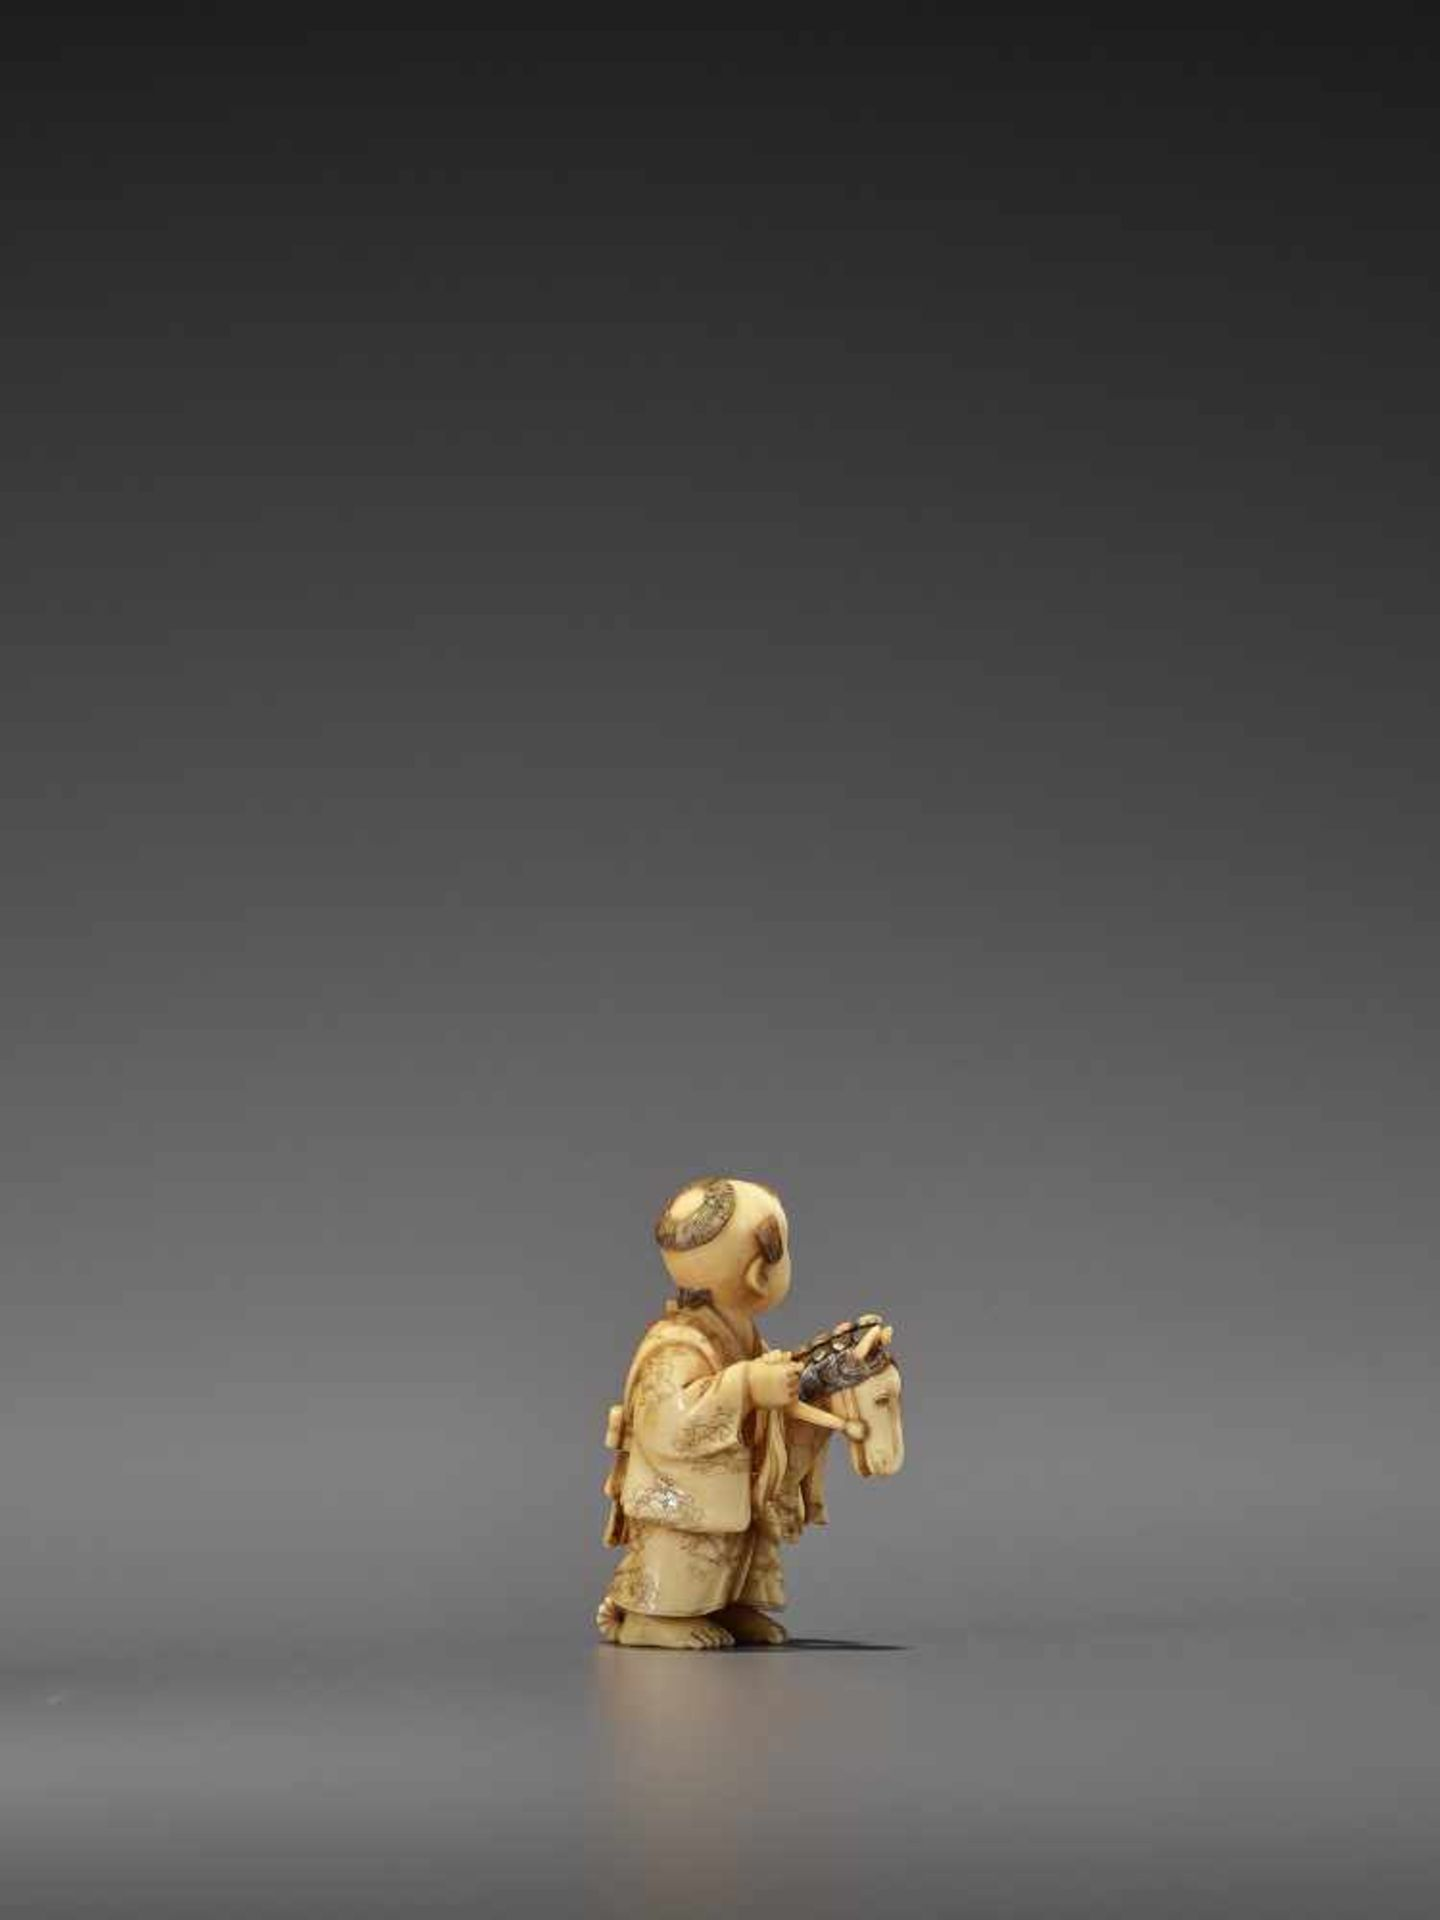 RYOMIN: A VERY FINE IVORY NETSUKE OF A BOY WITH HOBBY HORSE By Ono Ryomin, signed Ryomin with - Image 5 of 11